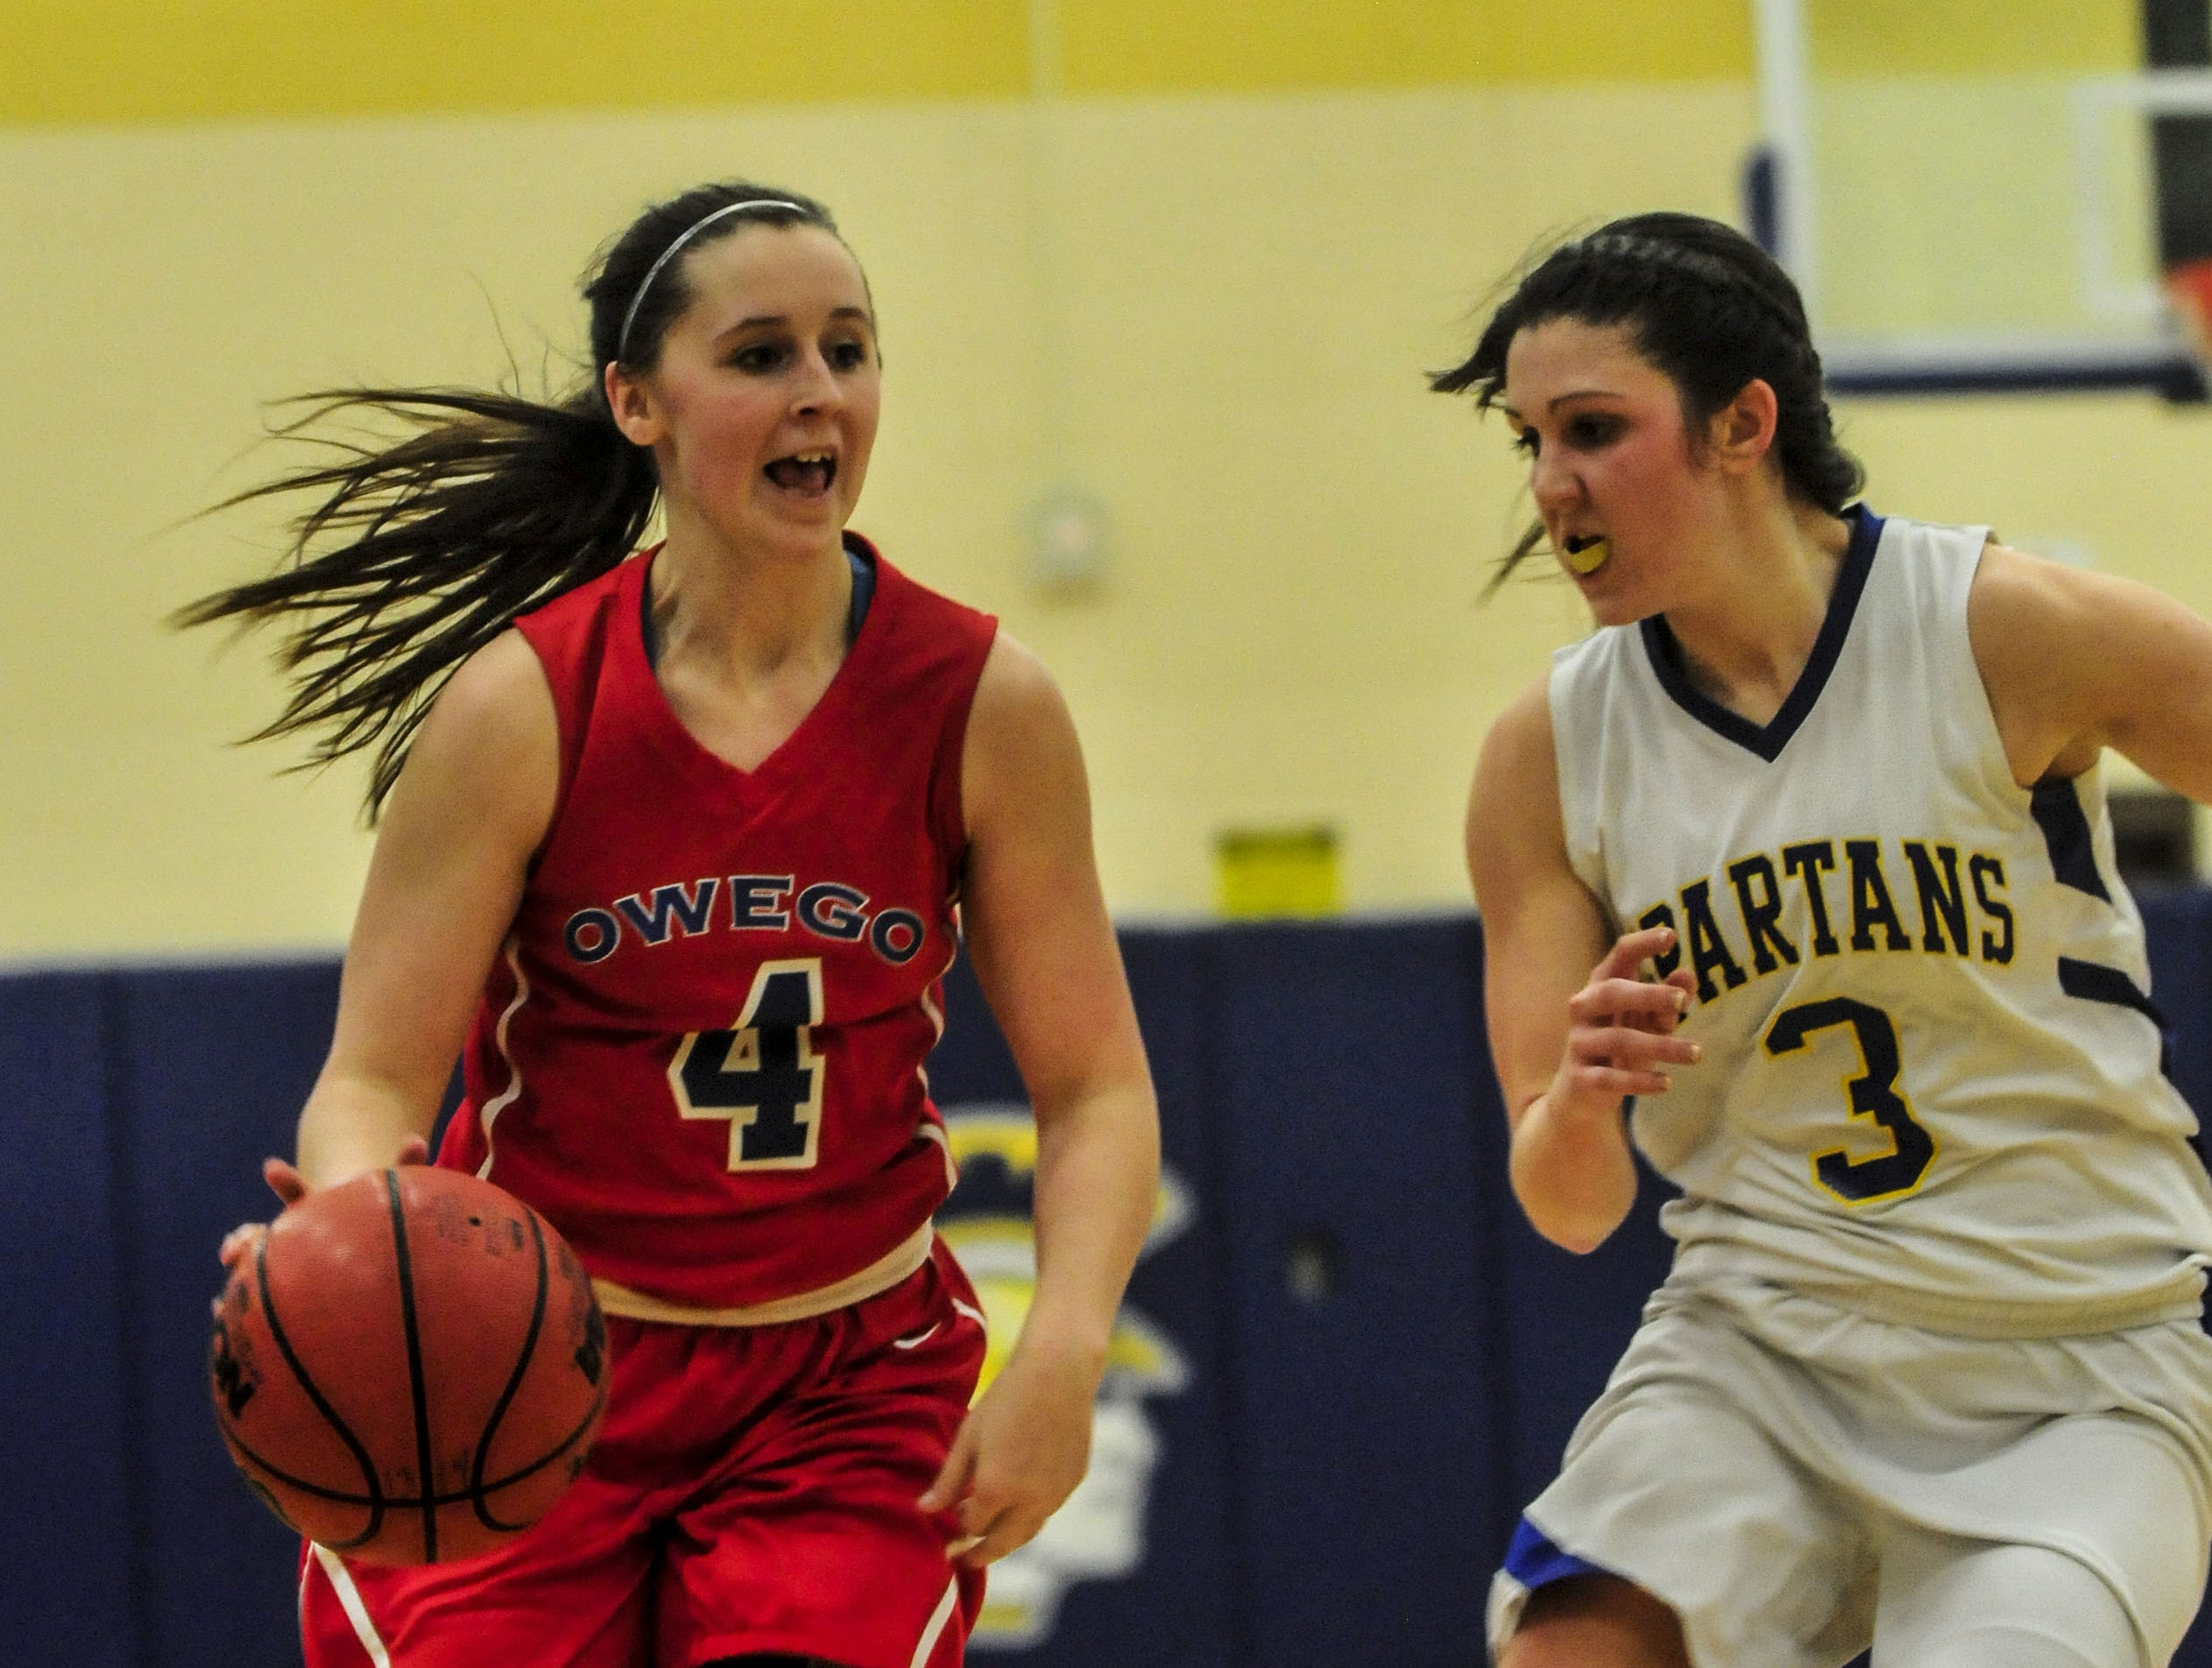 2014: Owego's Kaylee Miner tries to get past Maine-Endwell's Victoria Dean during the STAC semifinal on Wednesday. Visiting Owego advanced to the STAC final with a 62-60 victory.